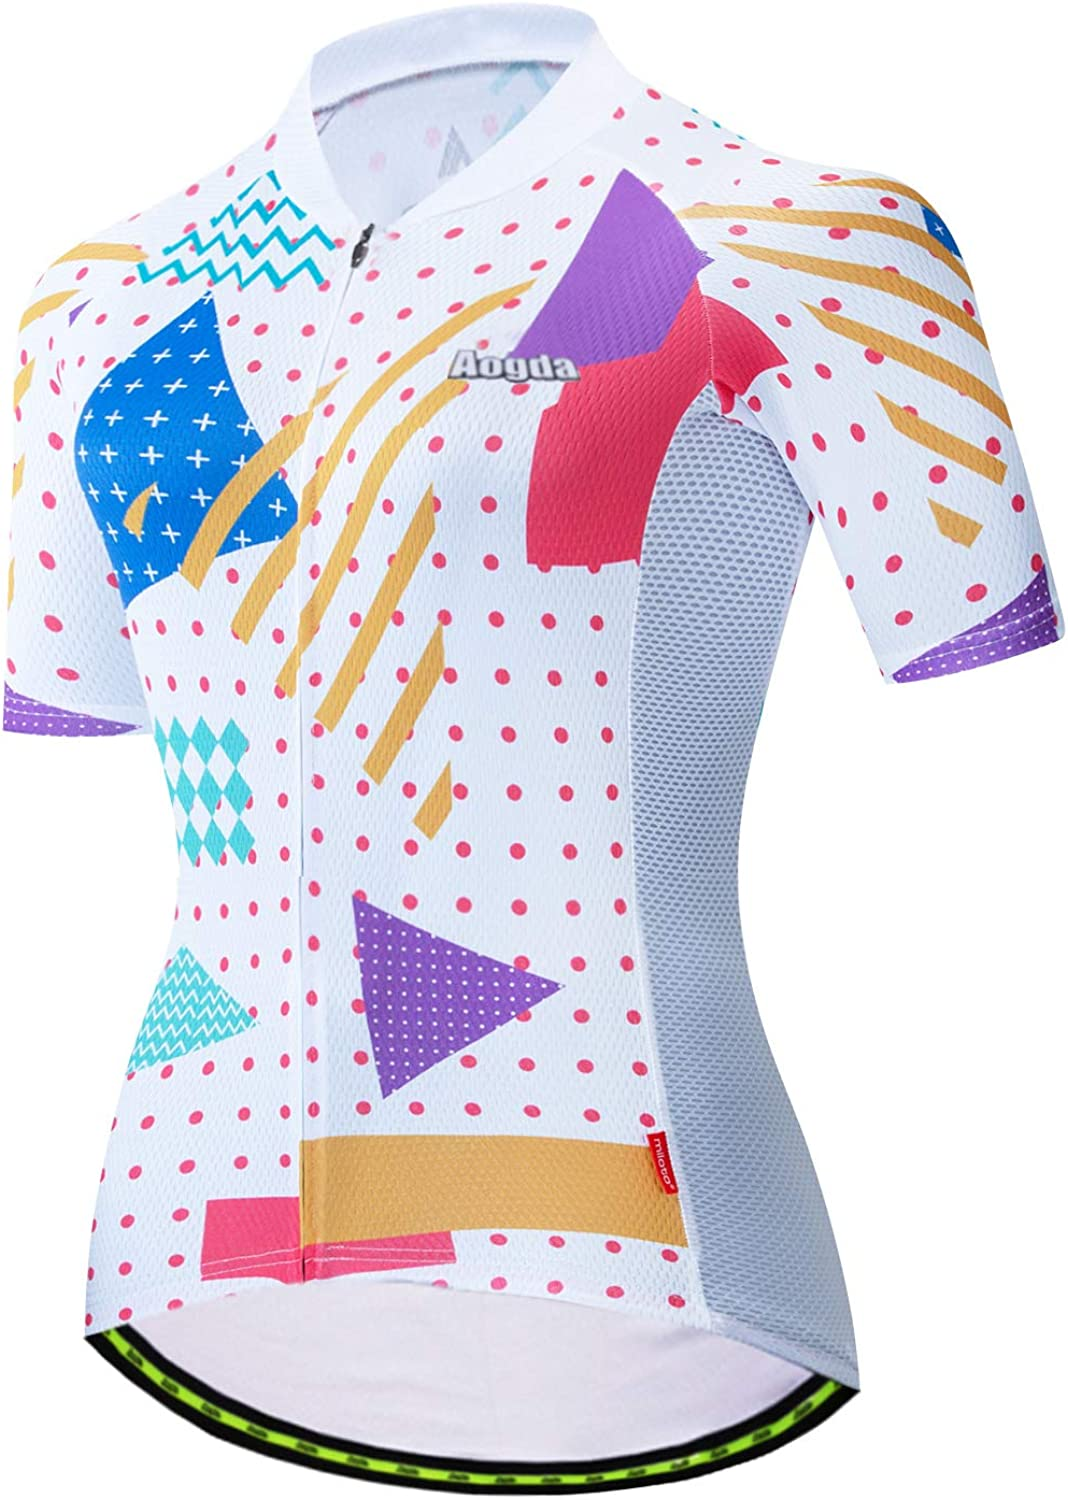 Aogda Luxury Cycling Shirts for Women Discount is also underway Team Biking Bicycle Jers Top Bike